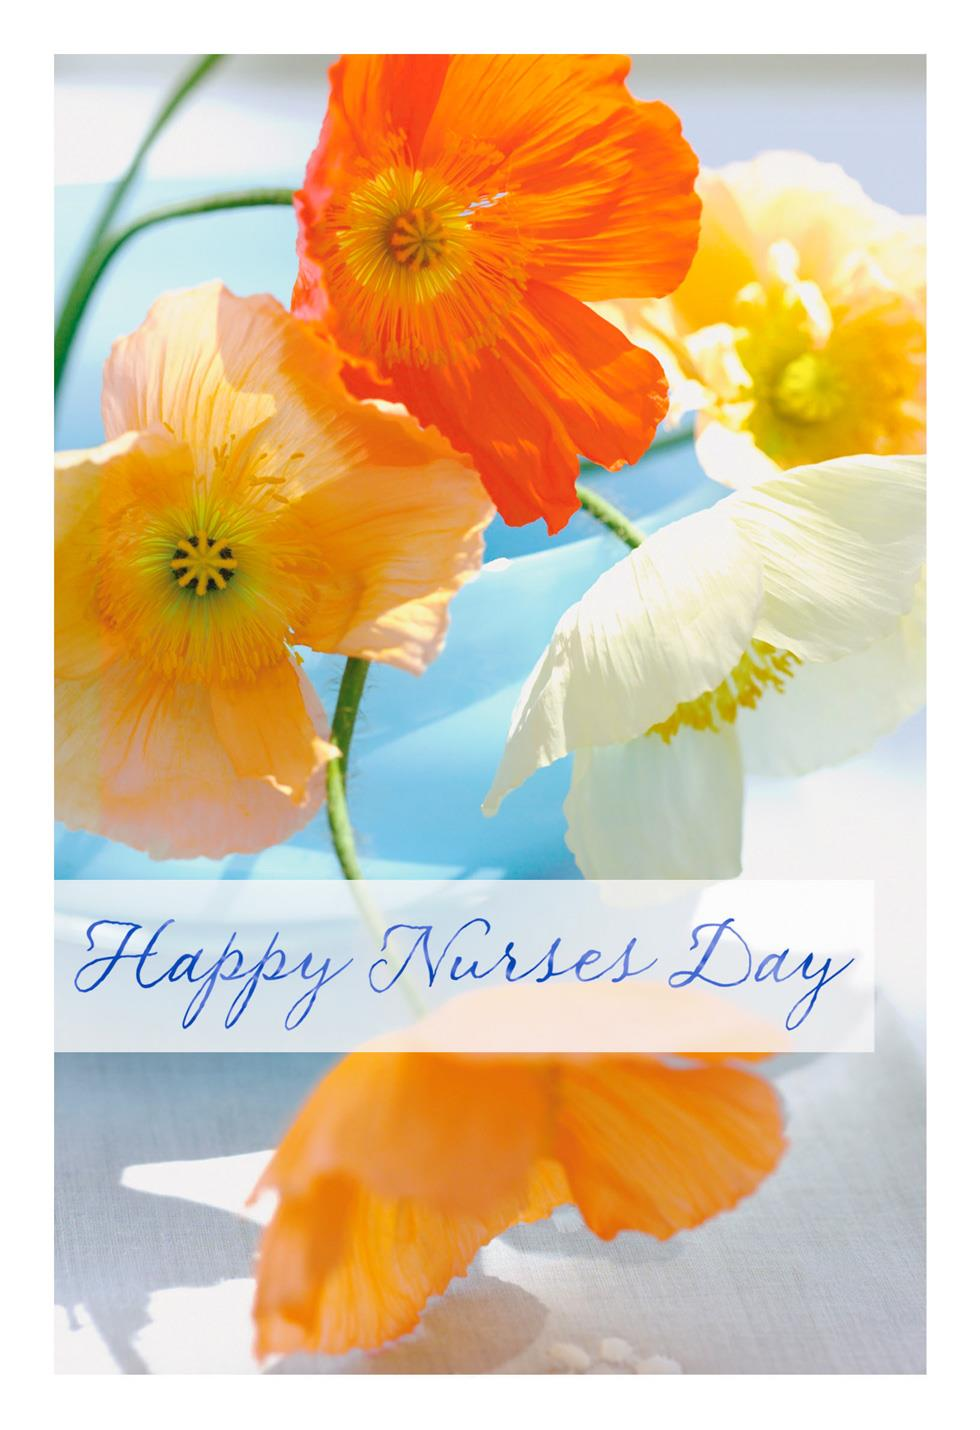 Nurses day cards hallmark giving a little back to you nurses day card m4hsunfo Image collections